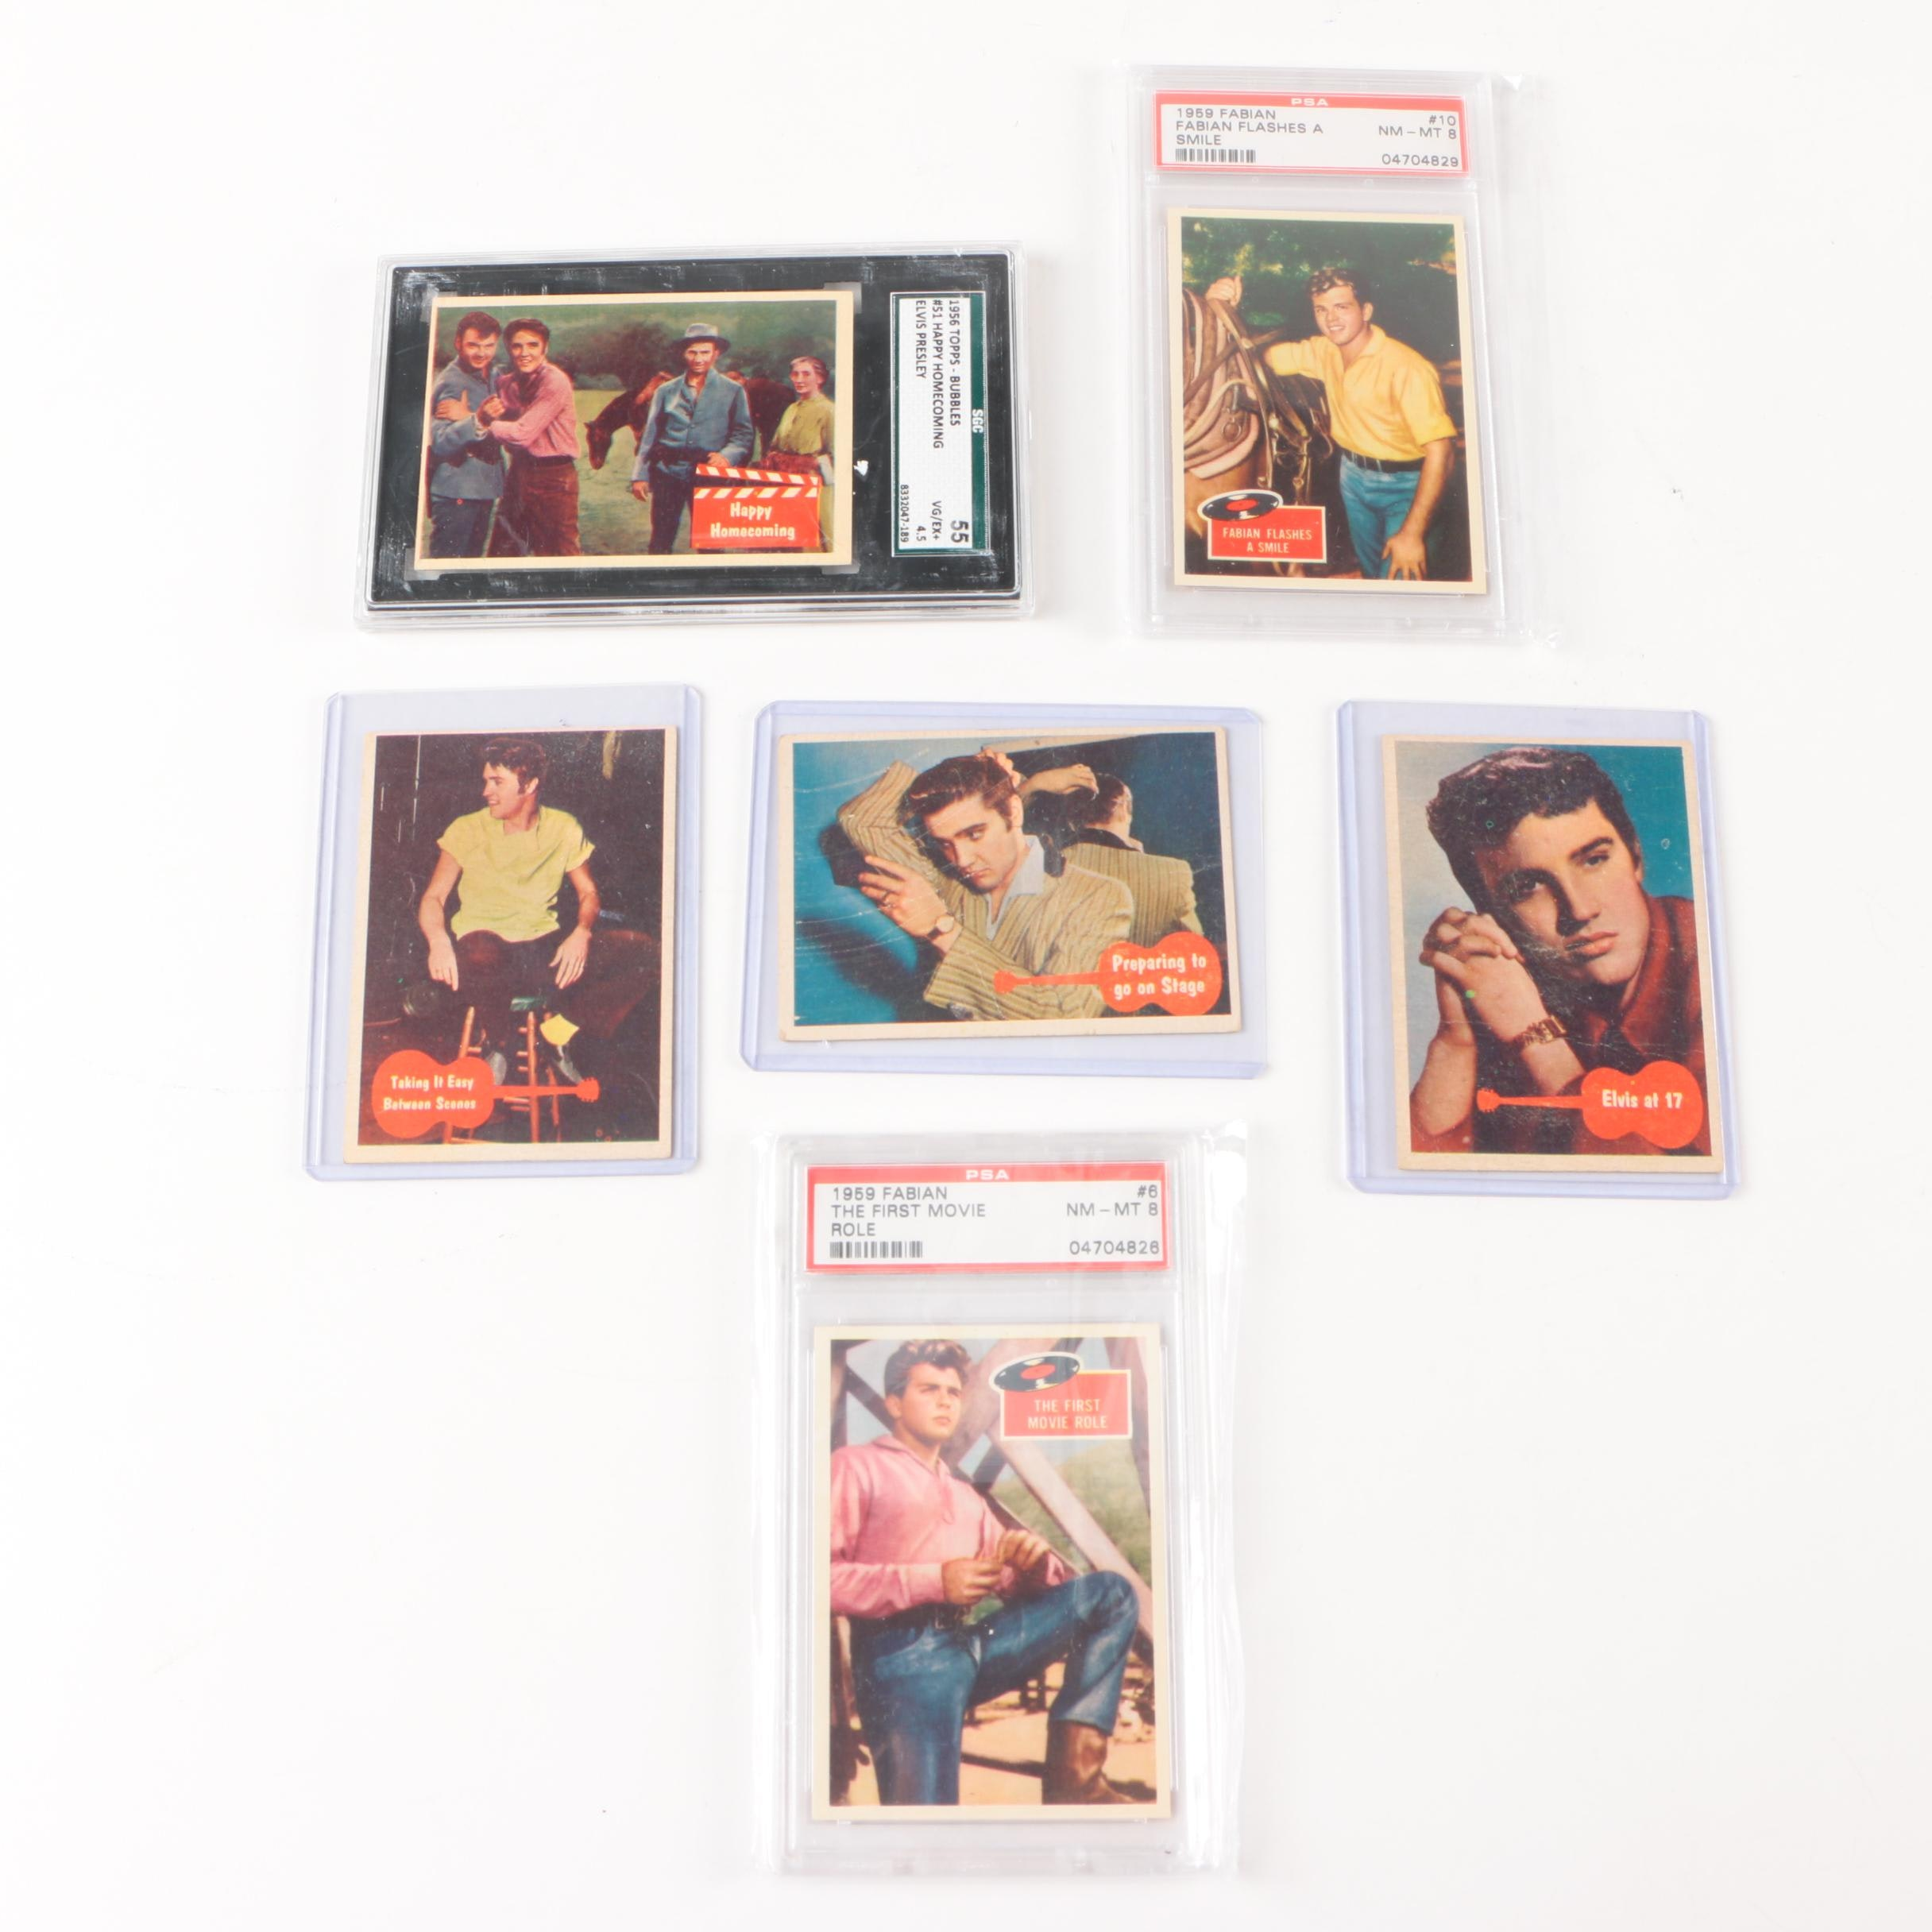 1950s Fabian and Elvis Trading Cards